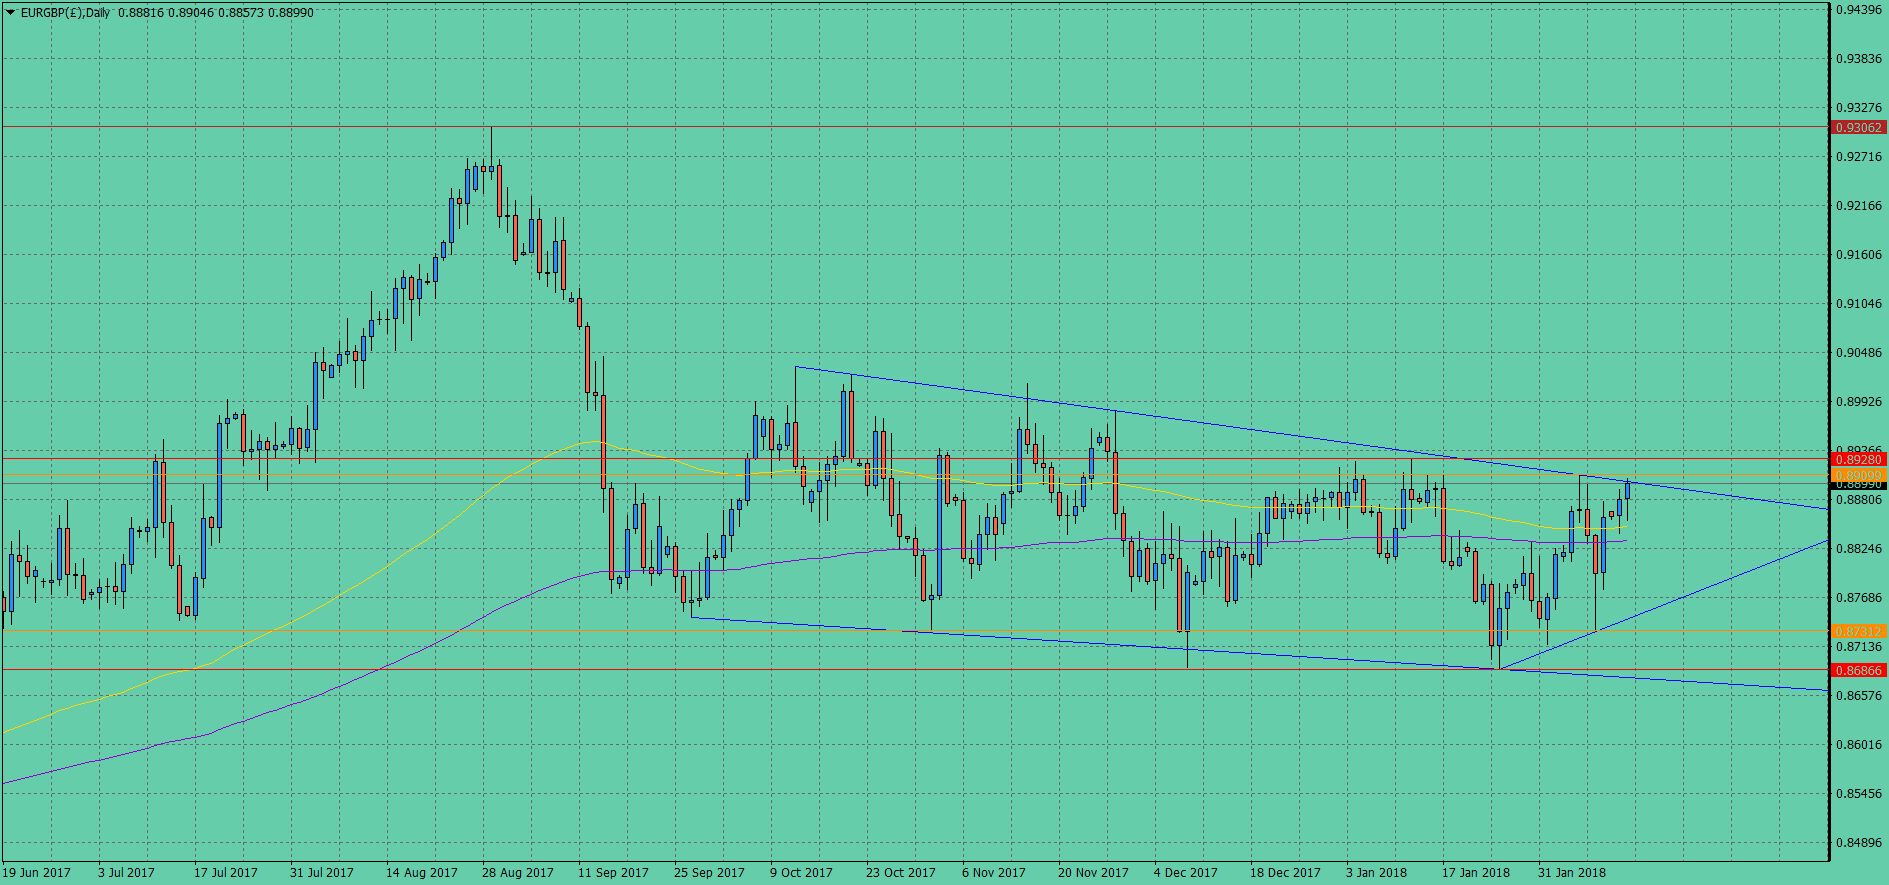 EURGBP(£)Daily.png